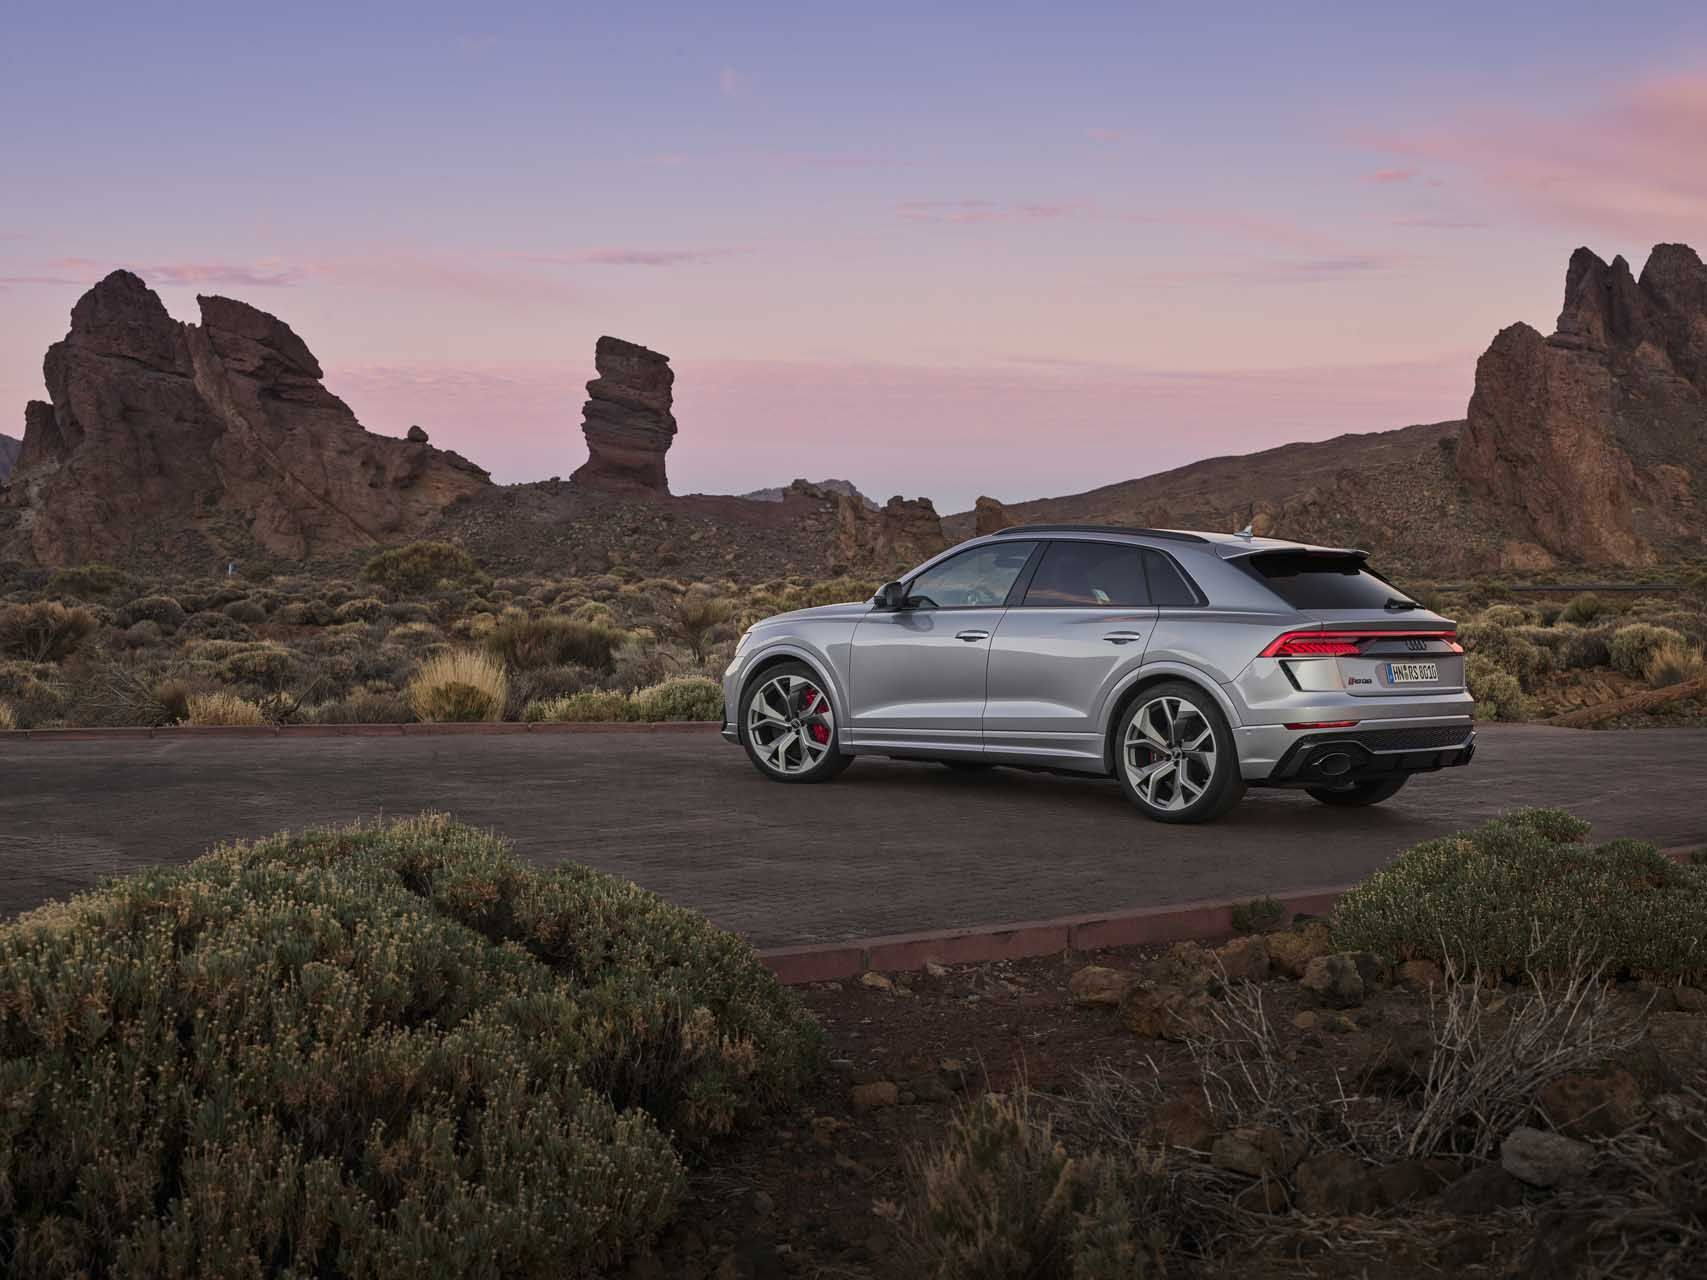 First Drive Review 2020 Audi Rs Q8 Rides A Wave Of Blisteringly Fast Family Suvs Audi Rs Audi First Drive